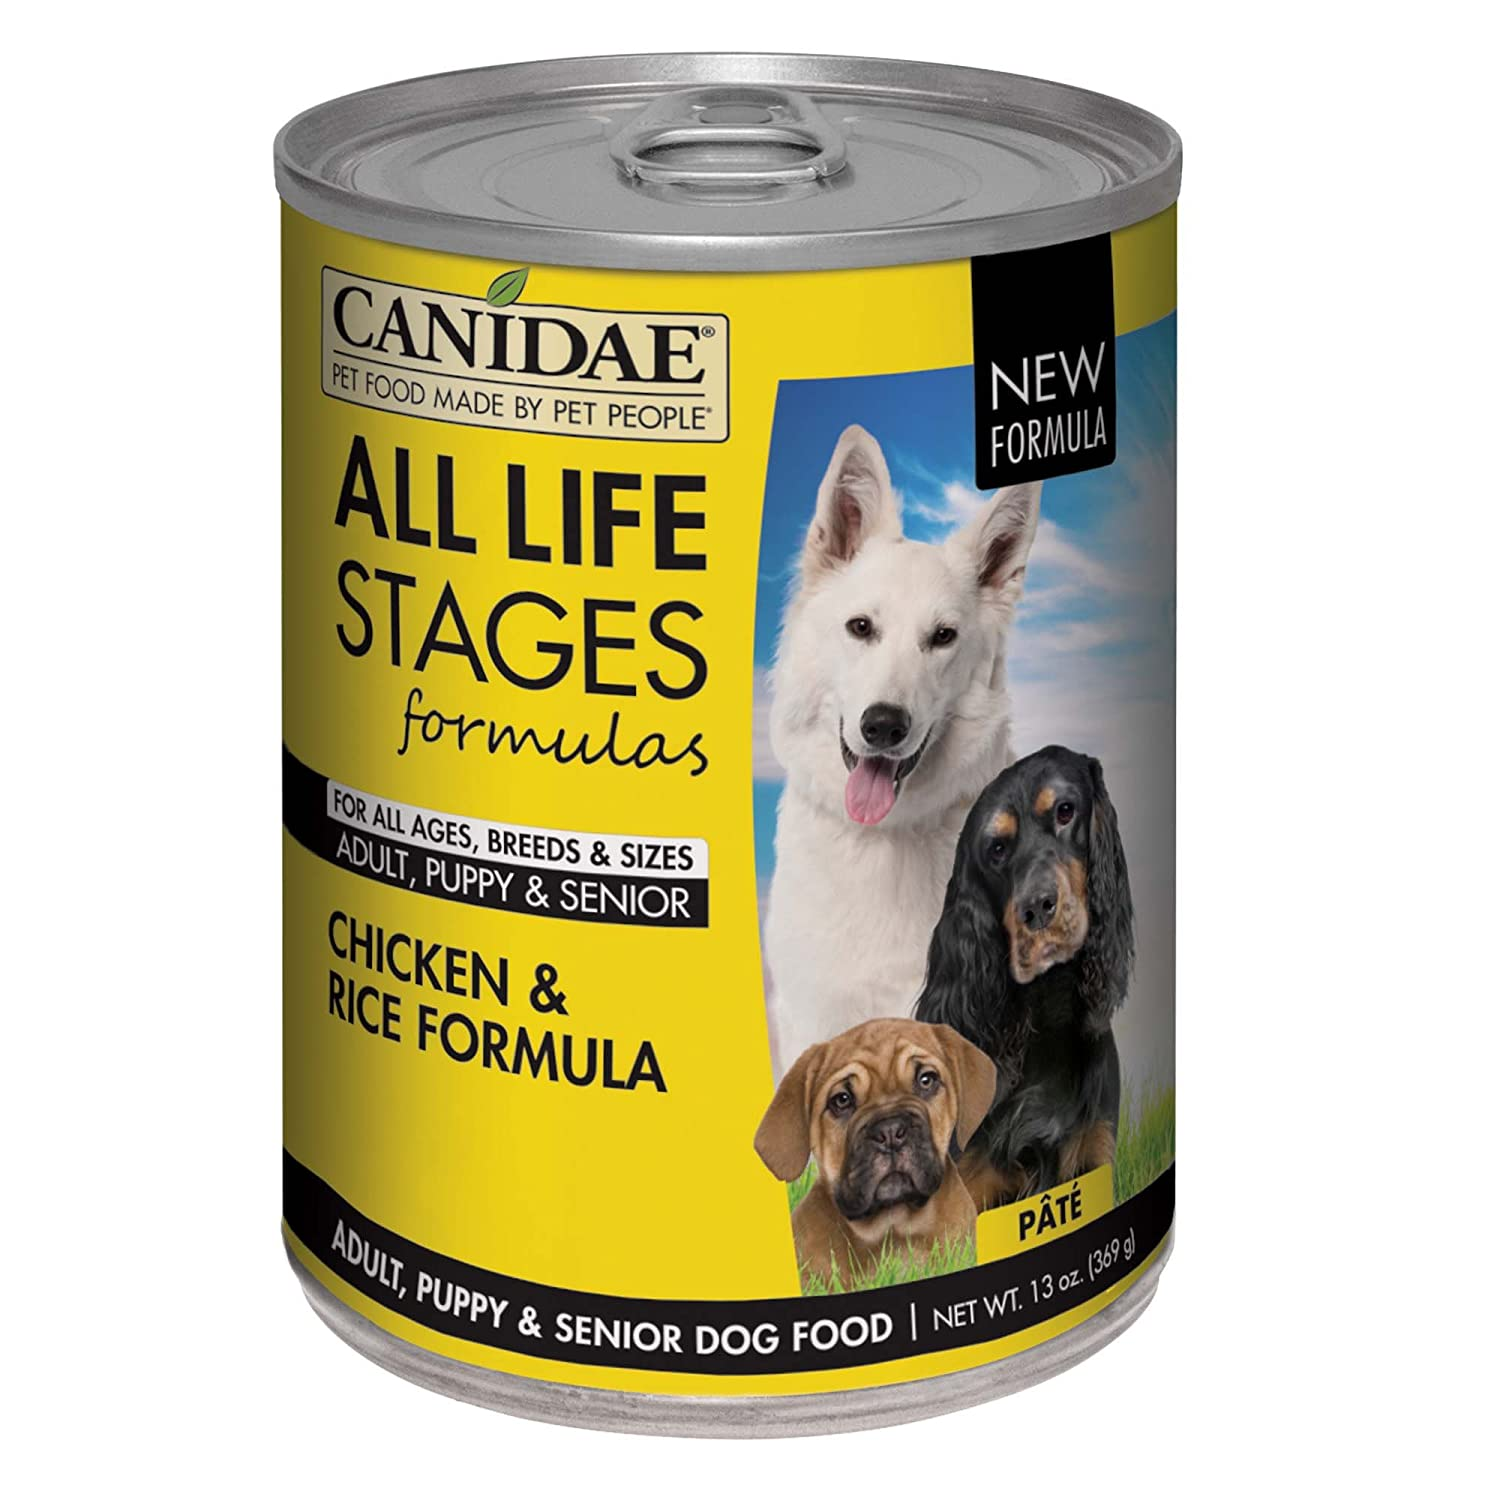 12. CANIDAE All Life Stages Formula Canned Dog Food